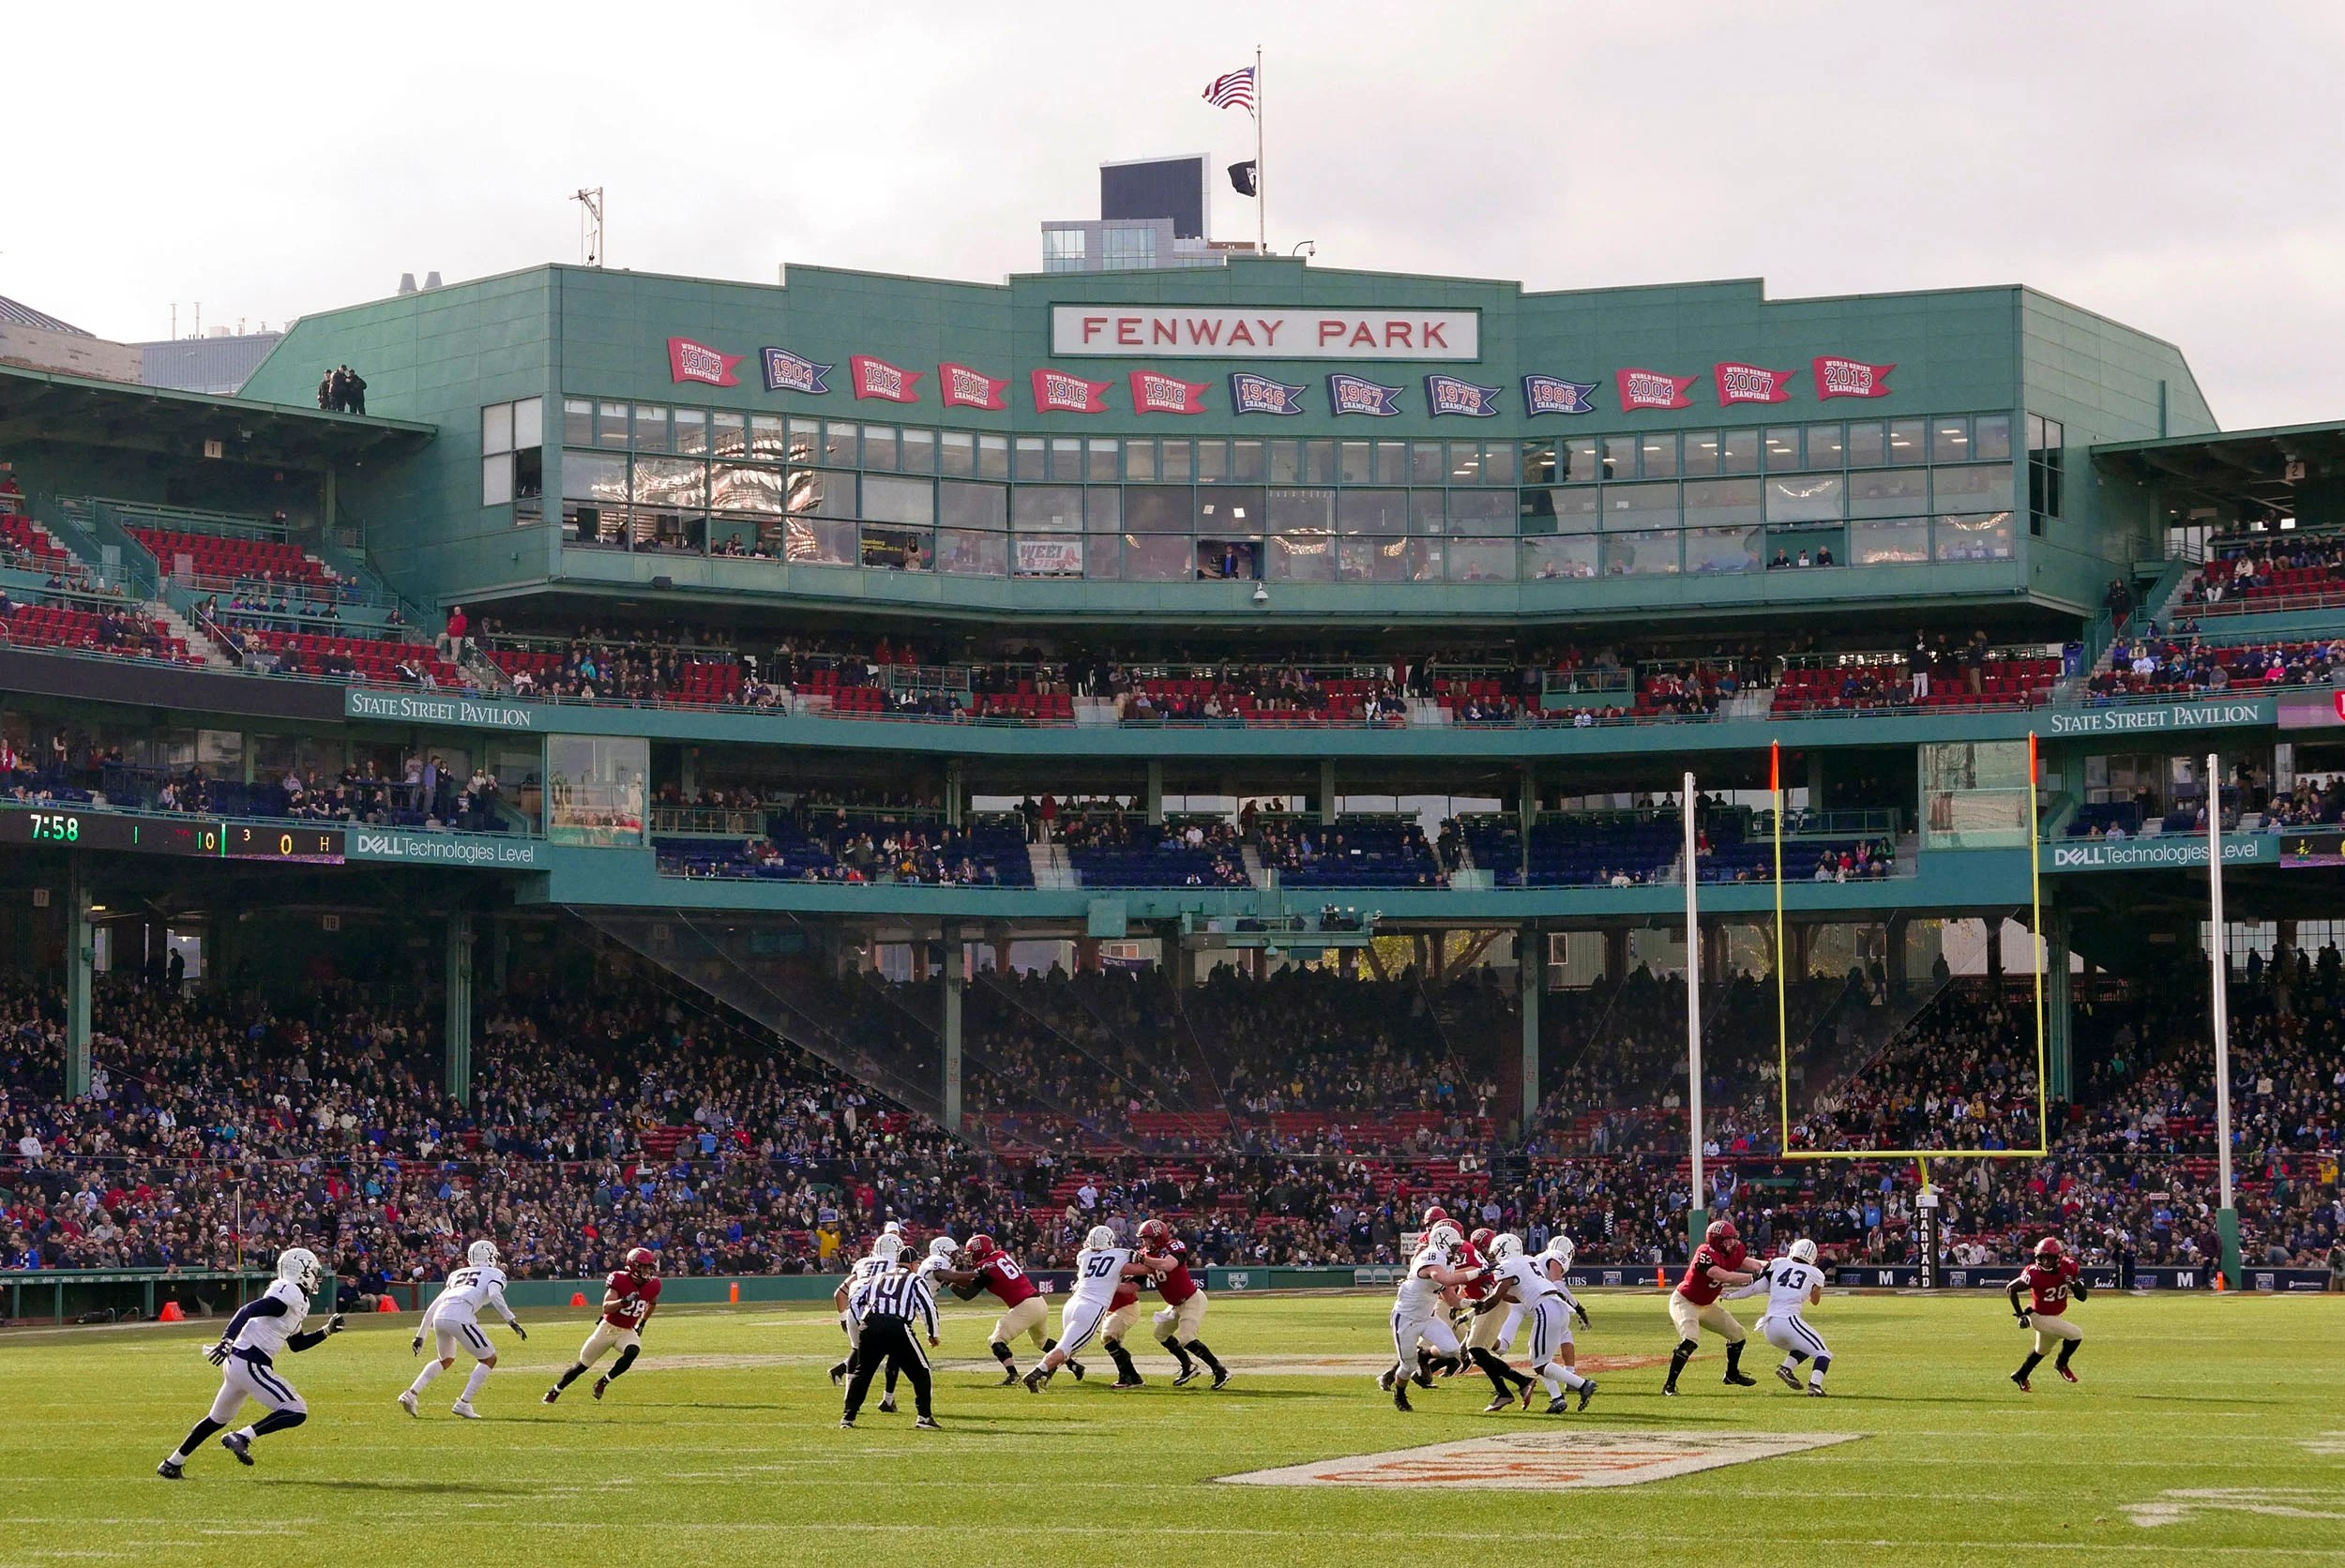 Fenway to host 135th Yale-Harvard game